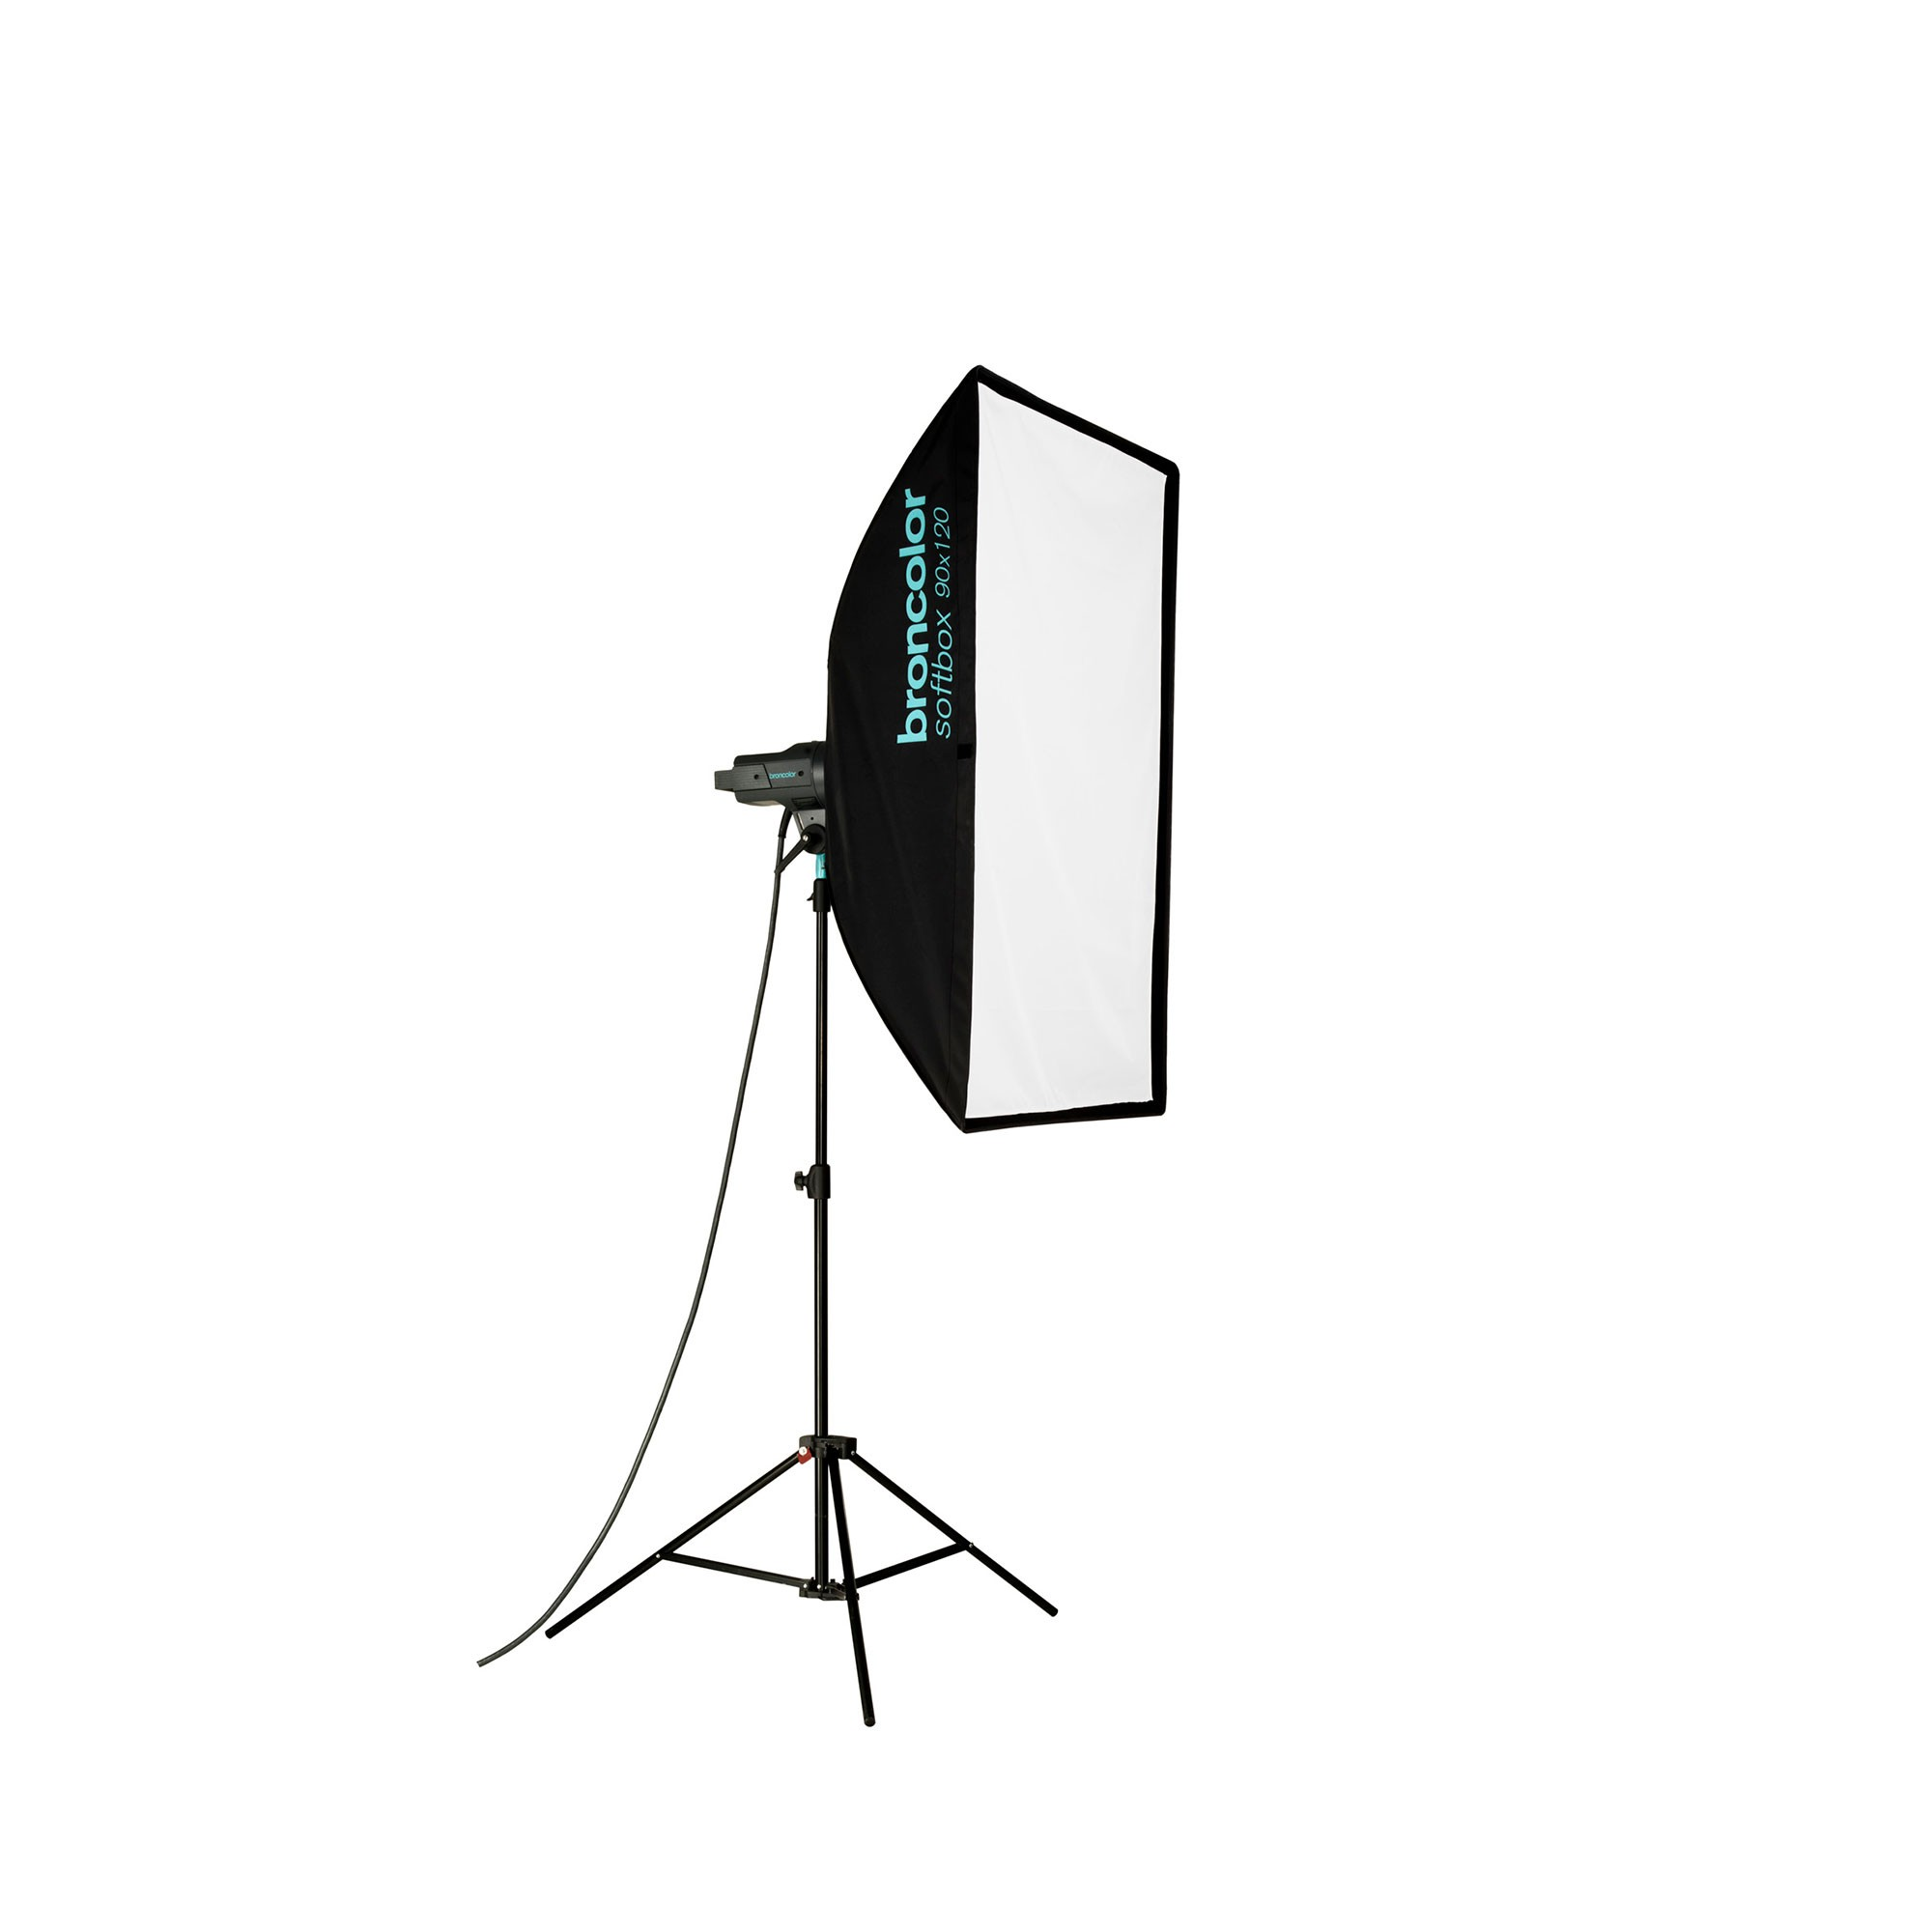 Broncolor Softbox 90x120 available to rent / verhuur / location at 50.8 Studio • Belgïe, Belgique, Belgium, Broncolor, Huur, Location, Louer, Photo, Rent, Rental, Softbox, Strobe, Studio, Verhuur, Video